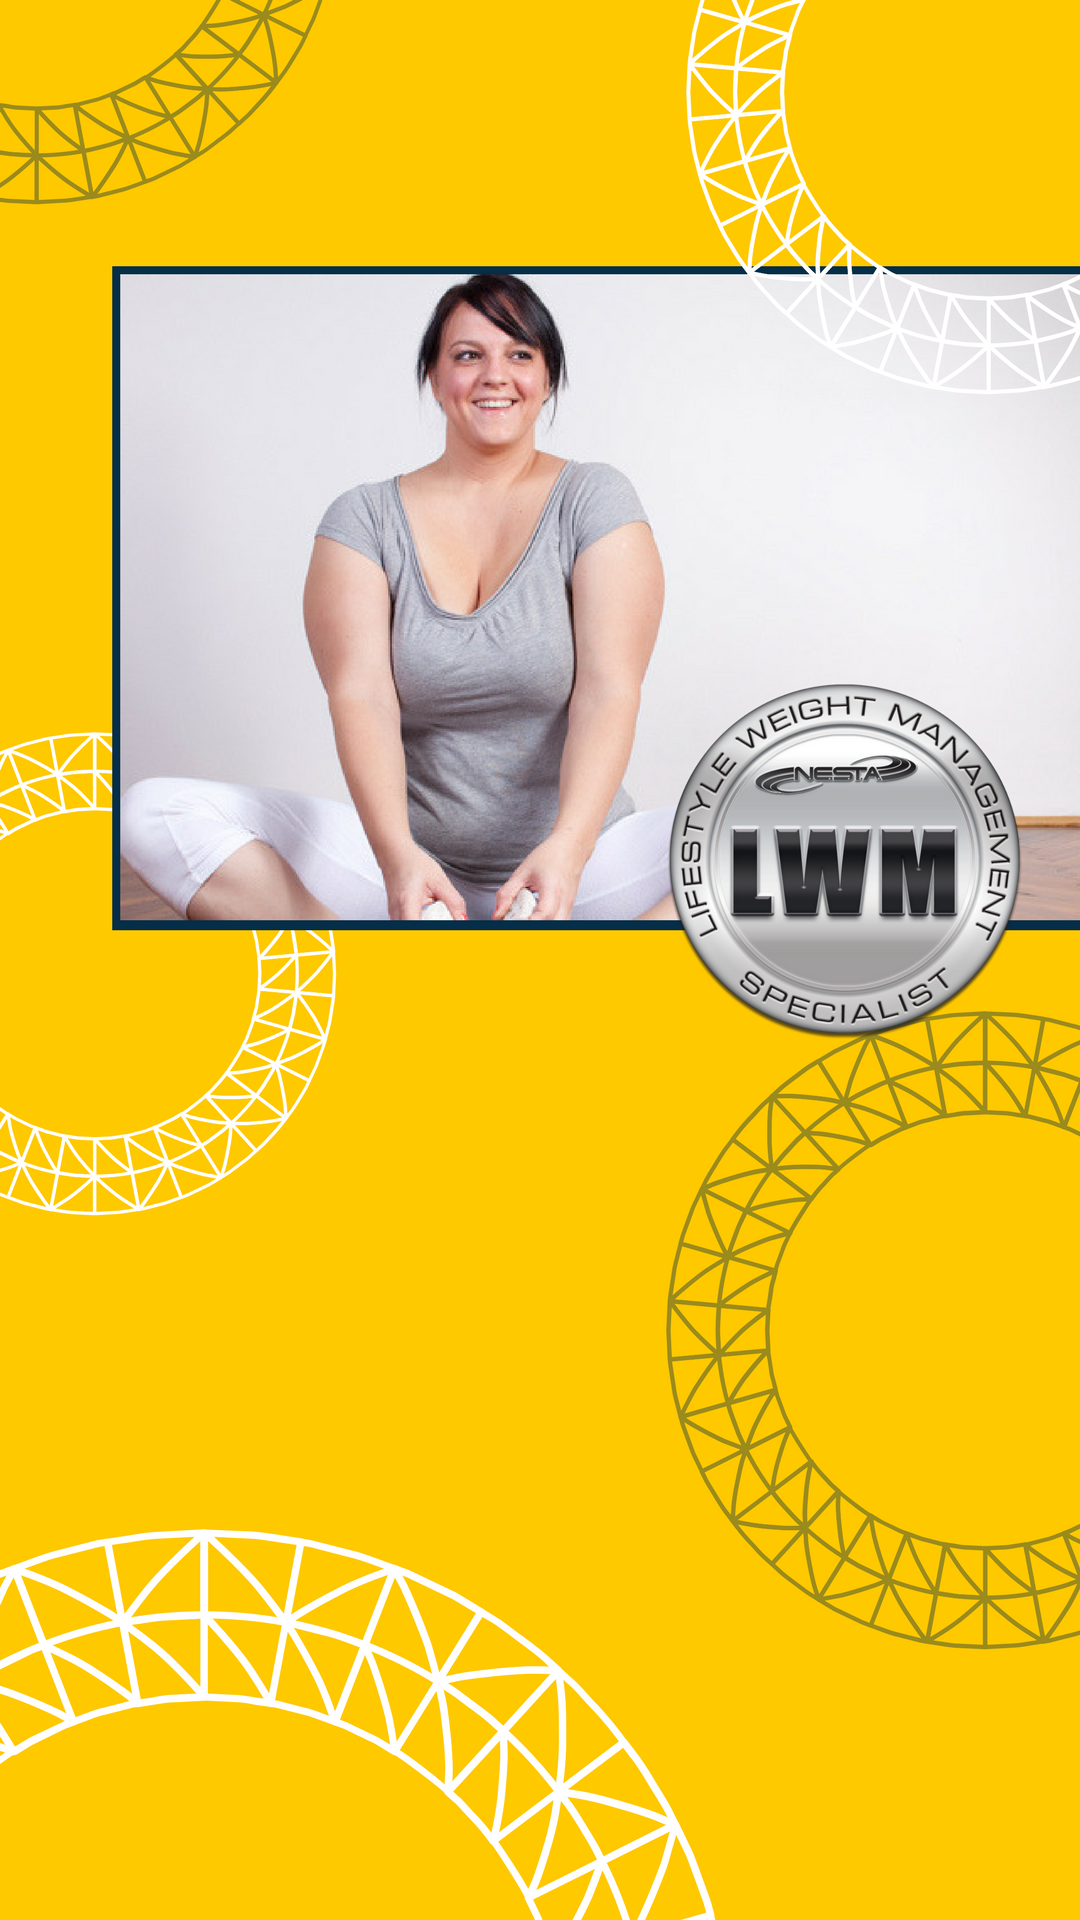 Lifestyle & Weight Management Specialist Certificat Life